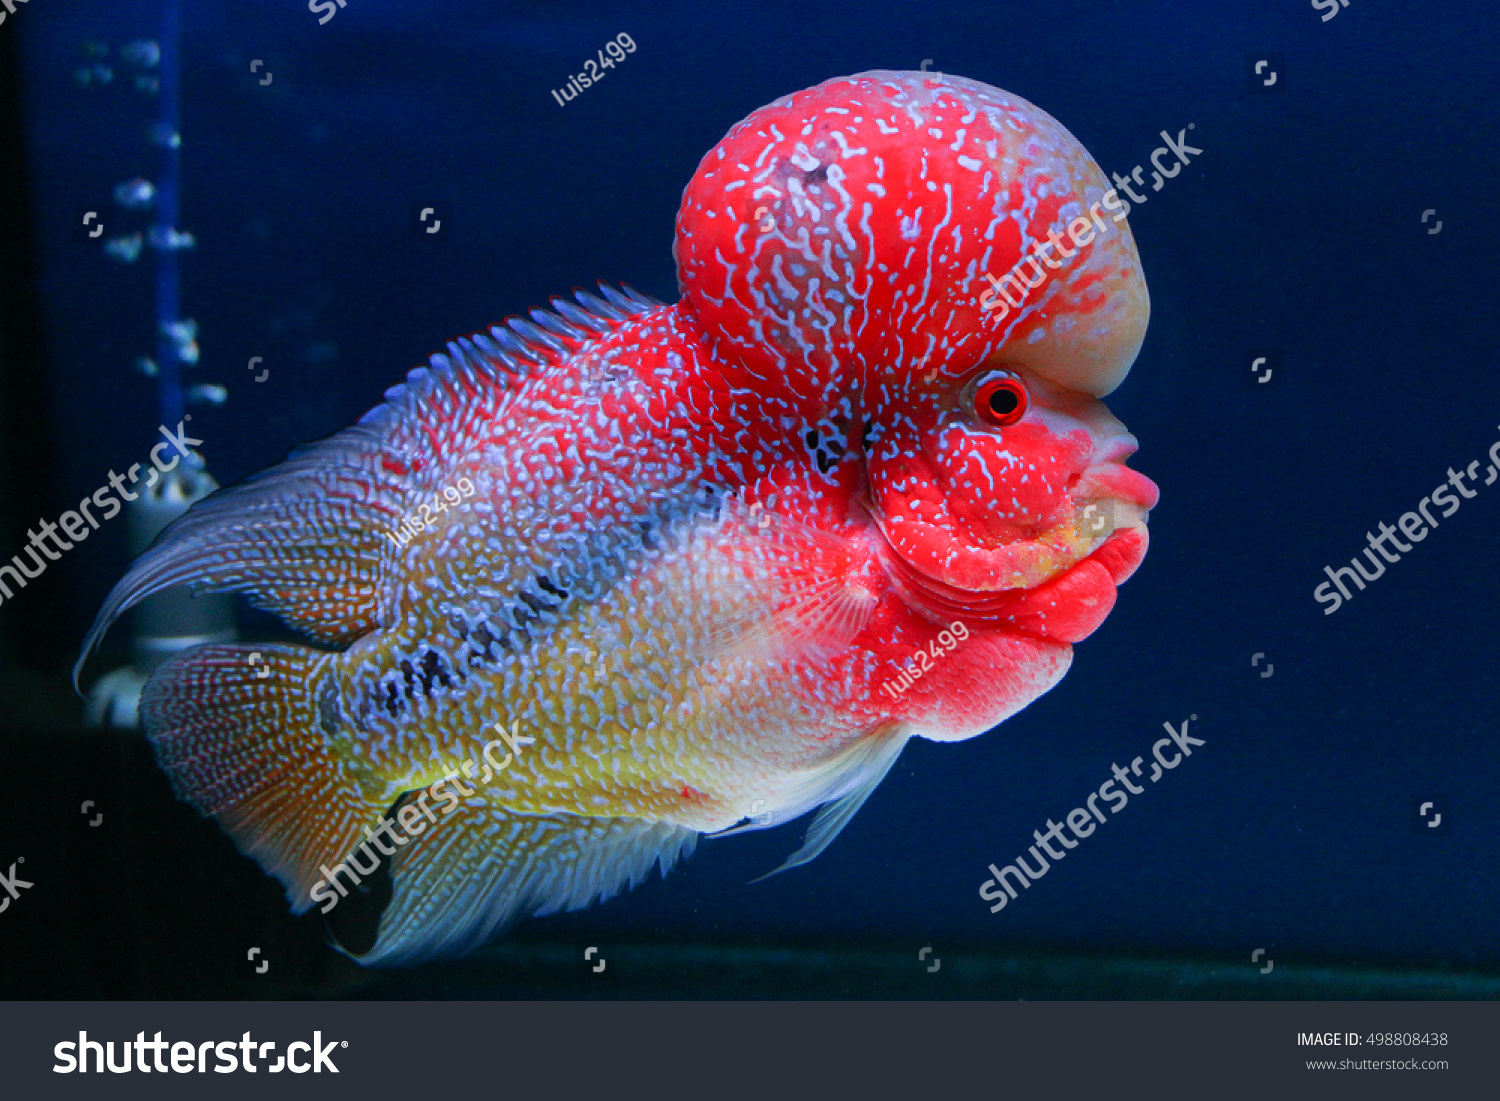 Beautiful Red Flowerhorn Crossbreed Cichlid Pet Stock Photo (Royalty ...